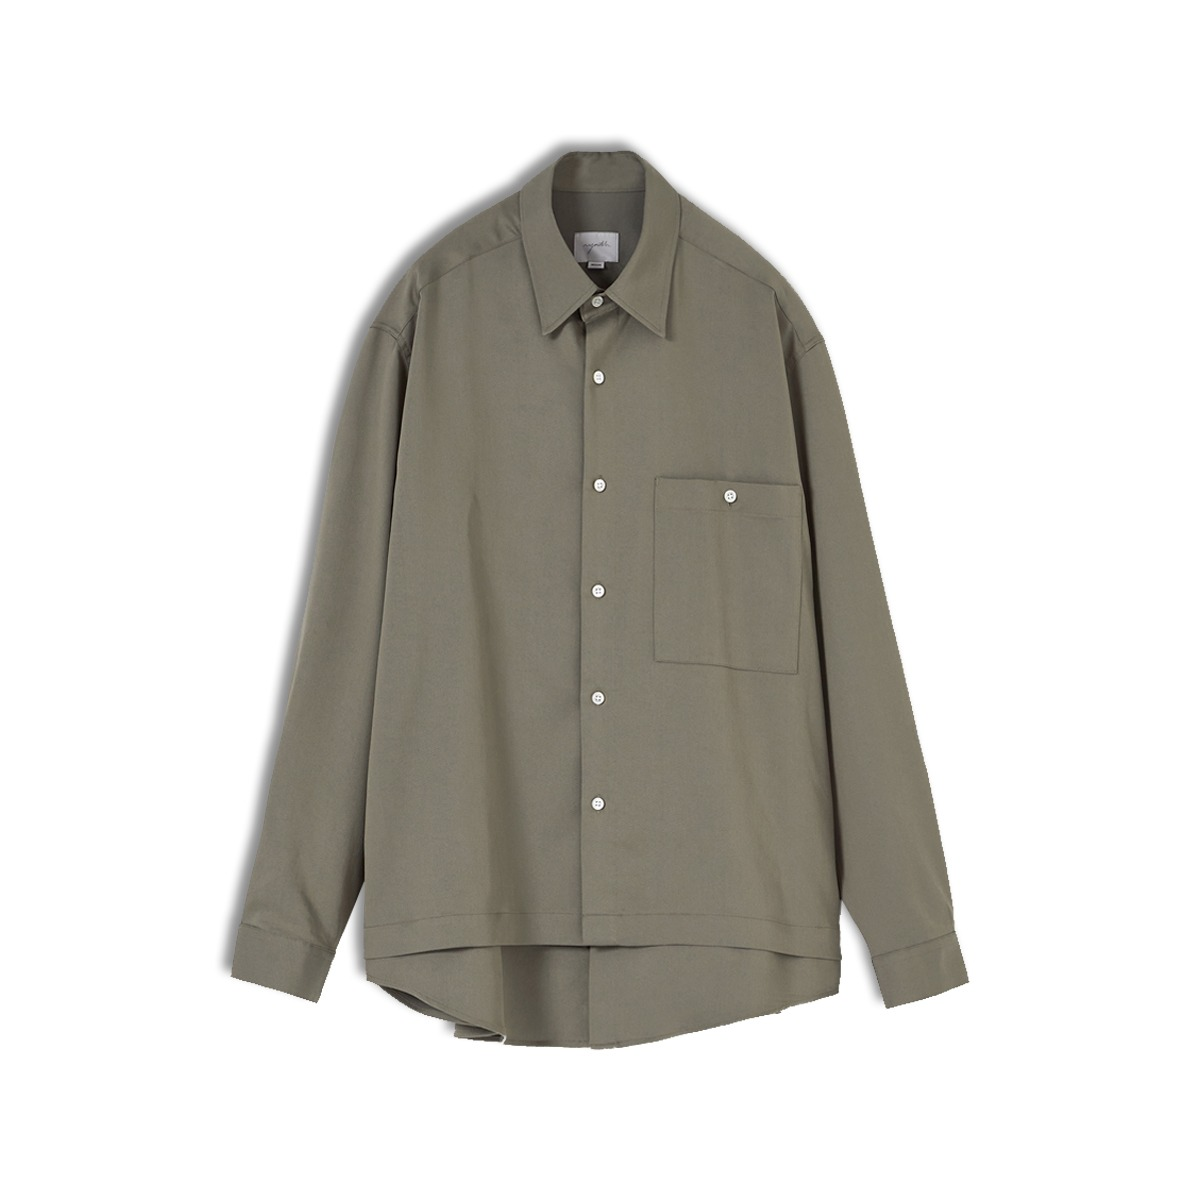 [YOUTH] LAYERED SHIRT 'LIGHT KHAKI'